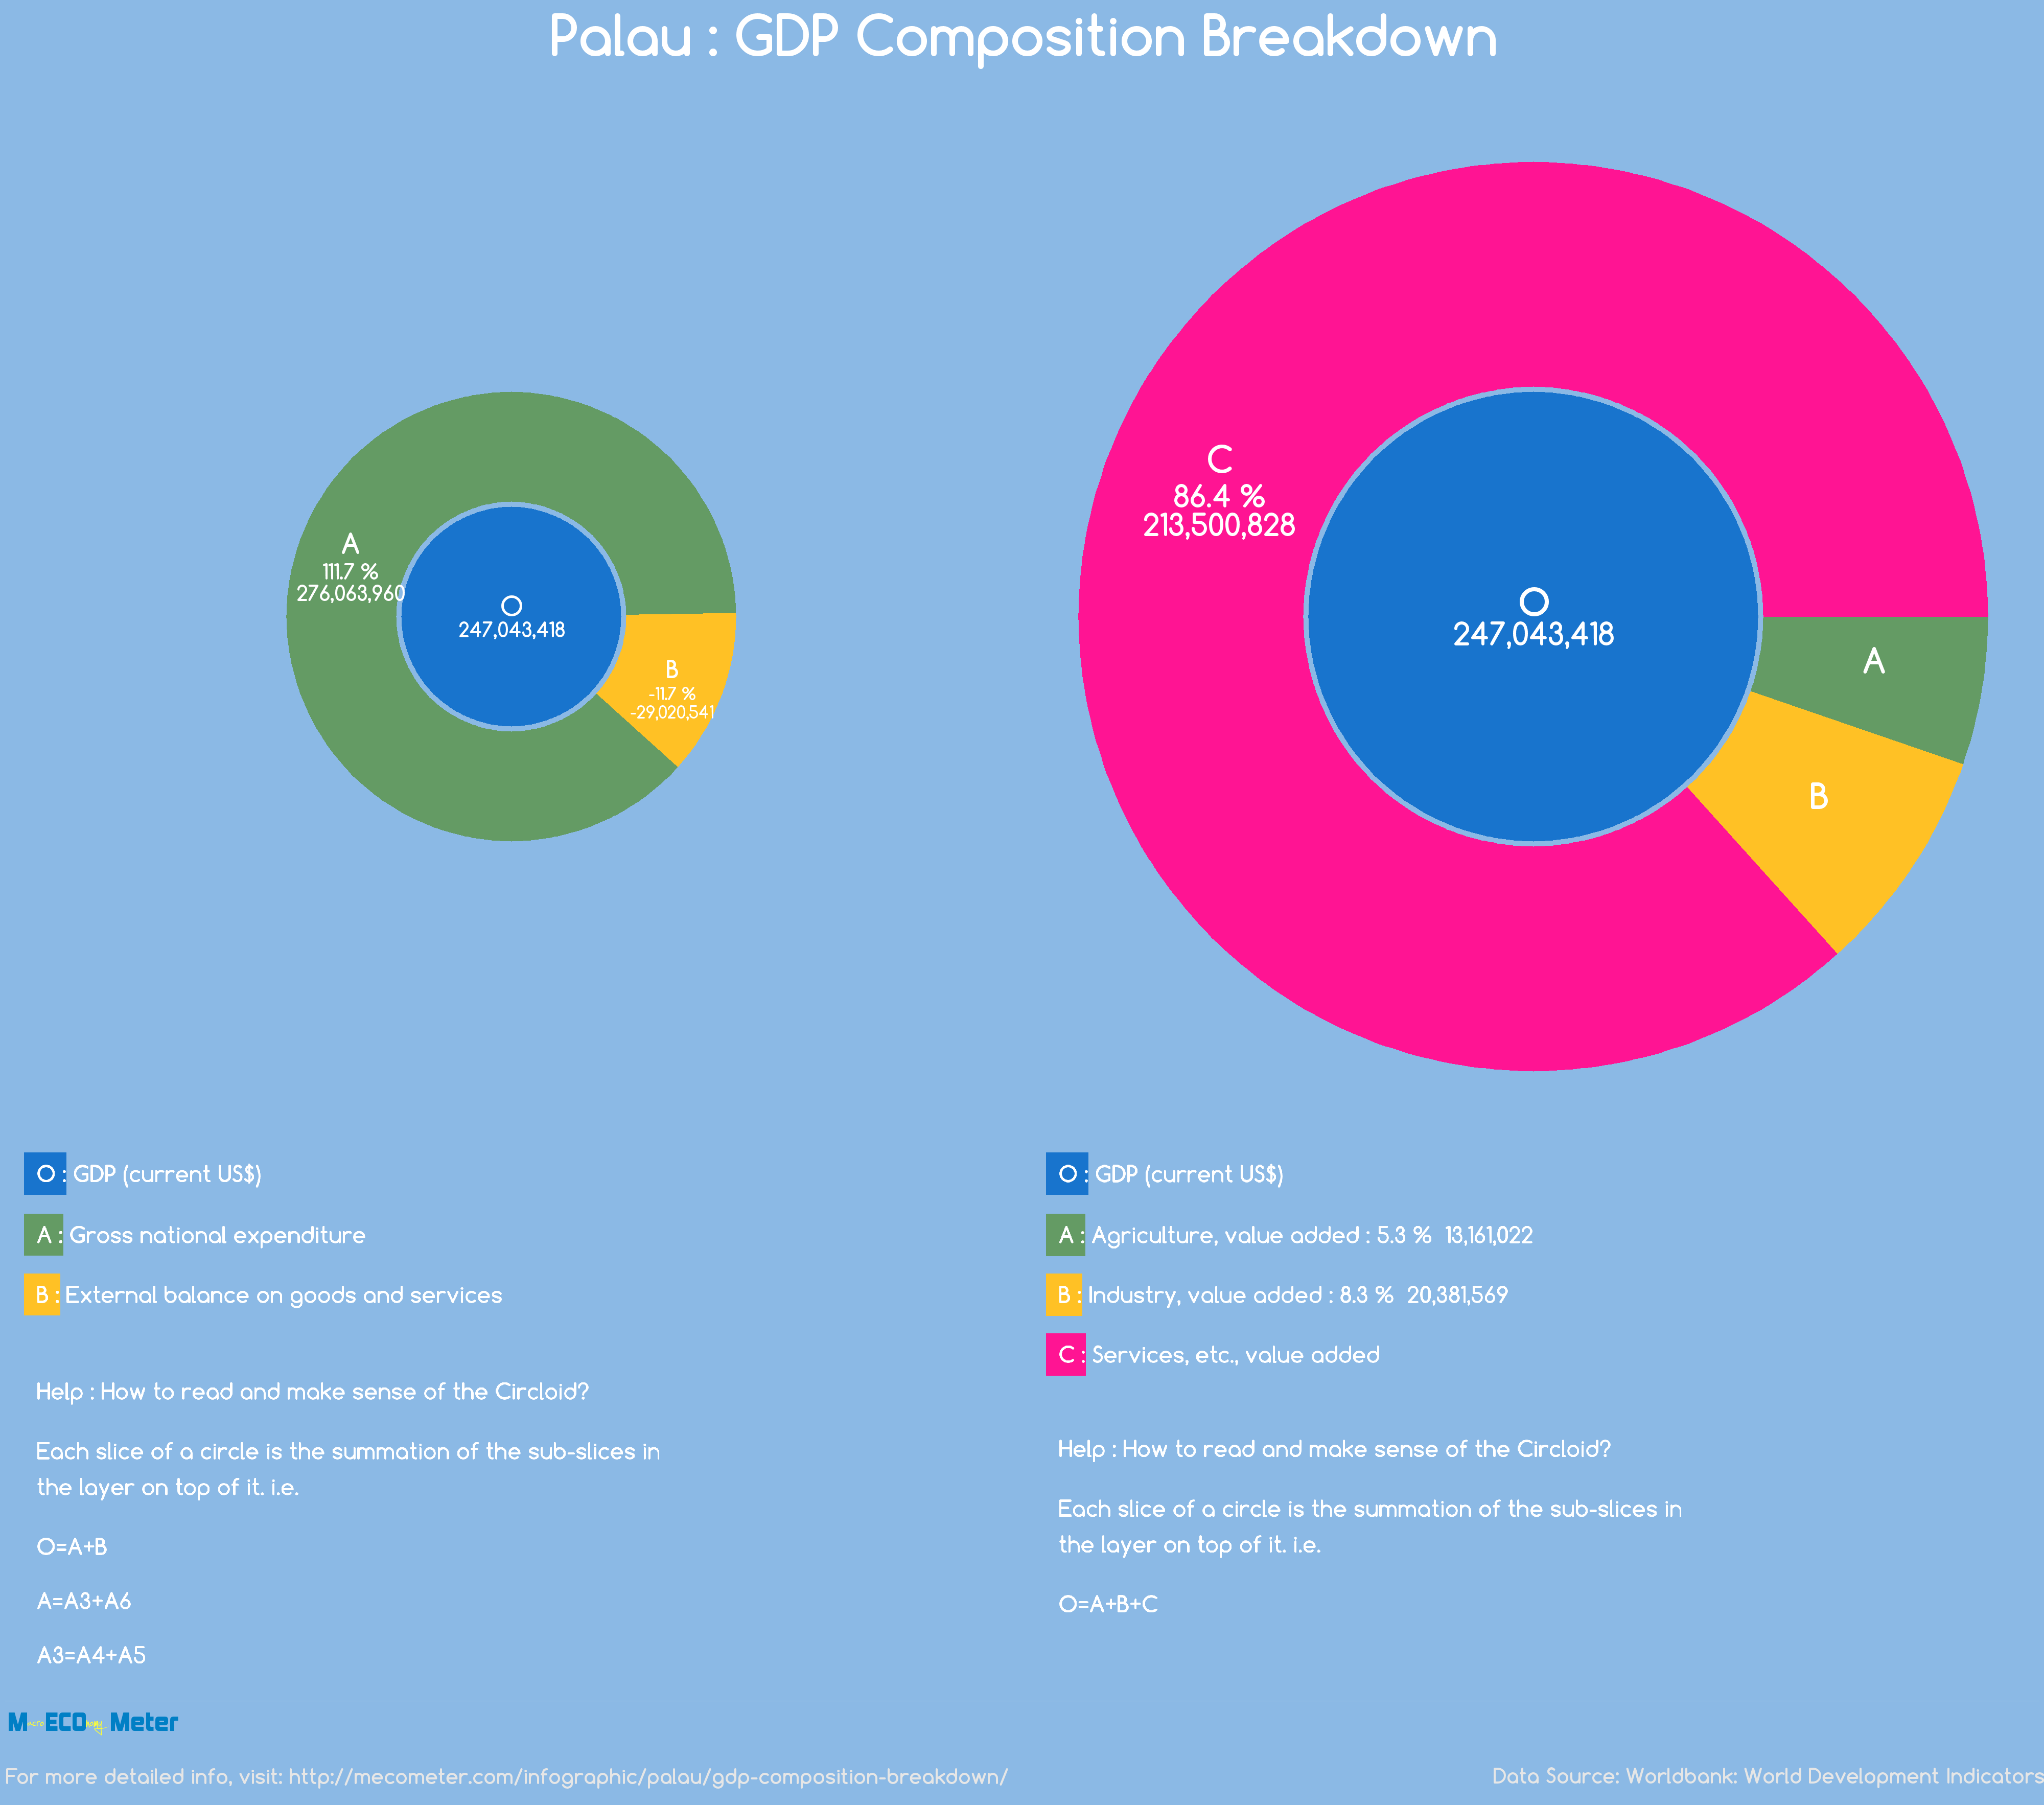 Palau : GDP Composition Breakdown